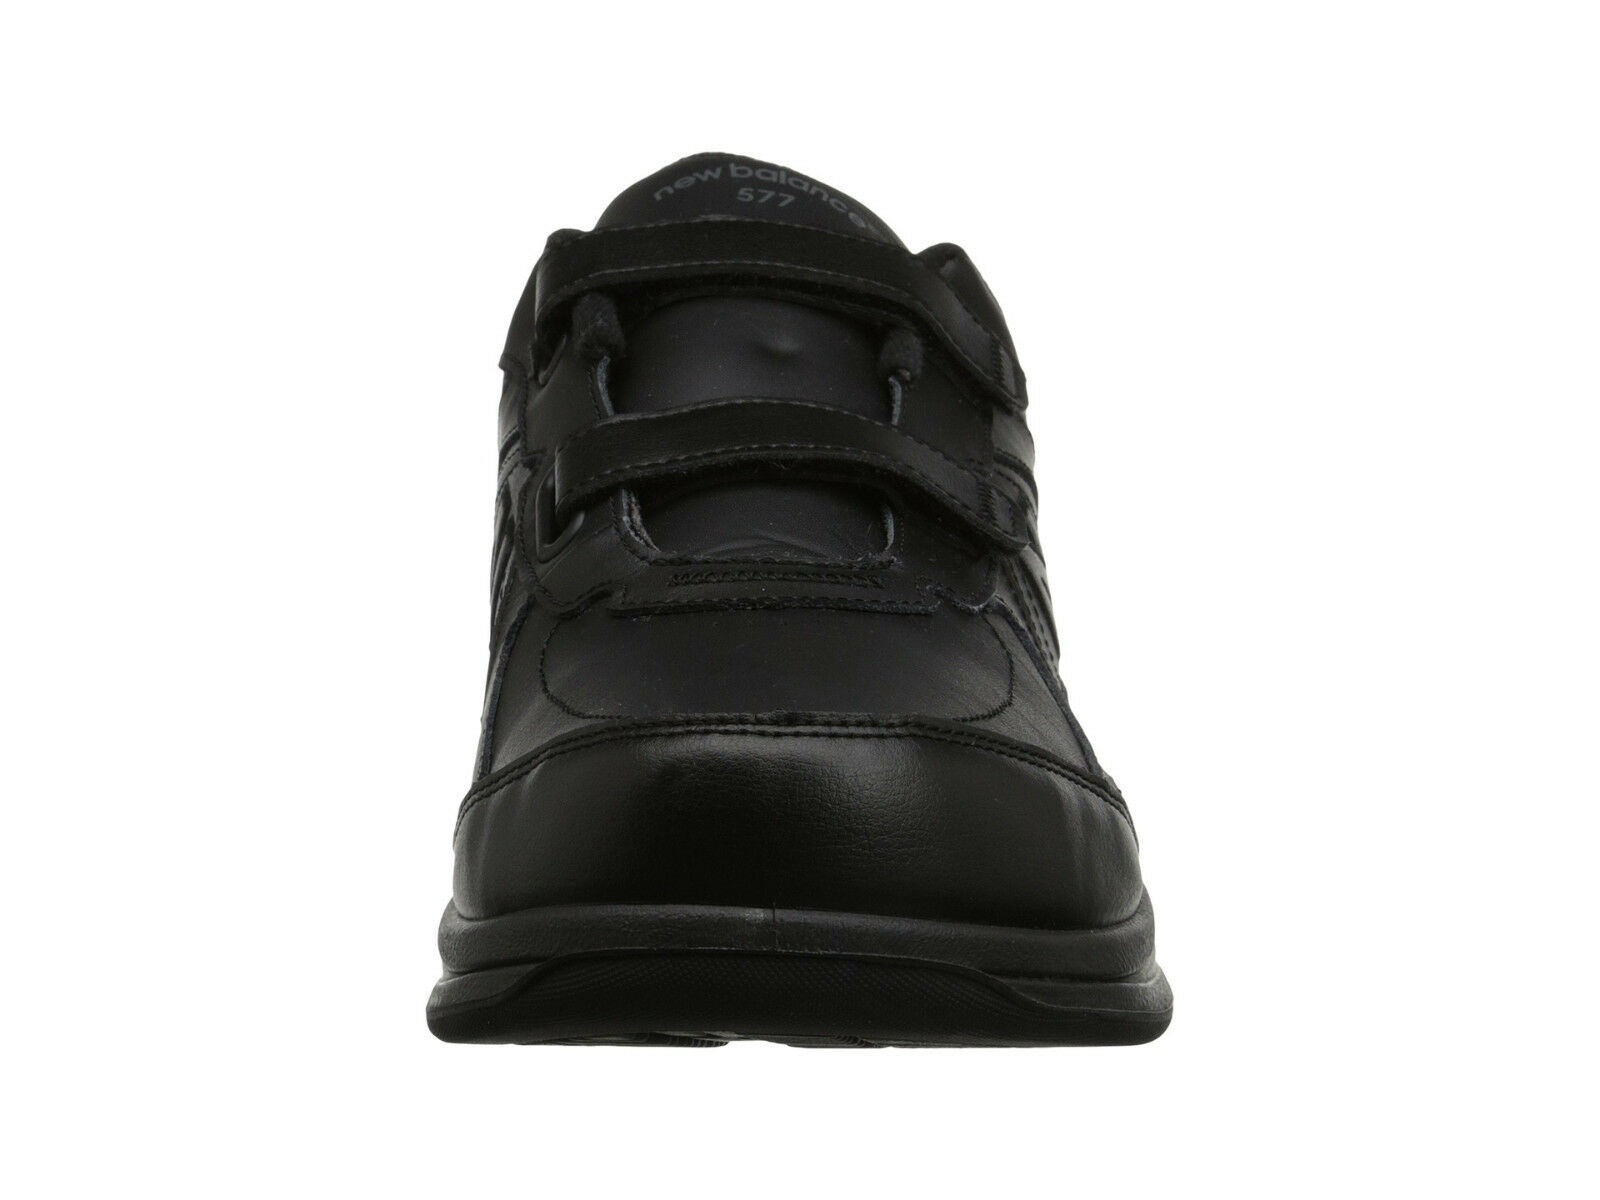 Men New Balance MW577VK Walking Walking Walking Hook & Loop (Medium D) Black 100% Authentic New 0fcabf